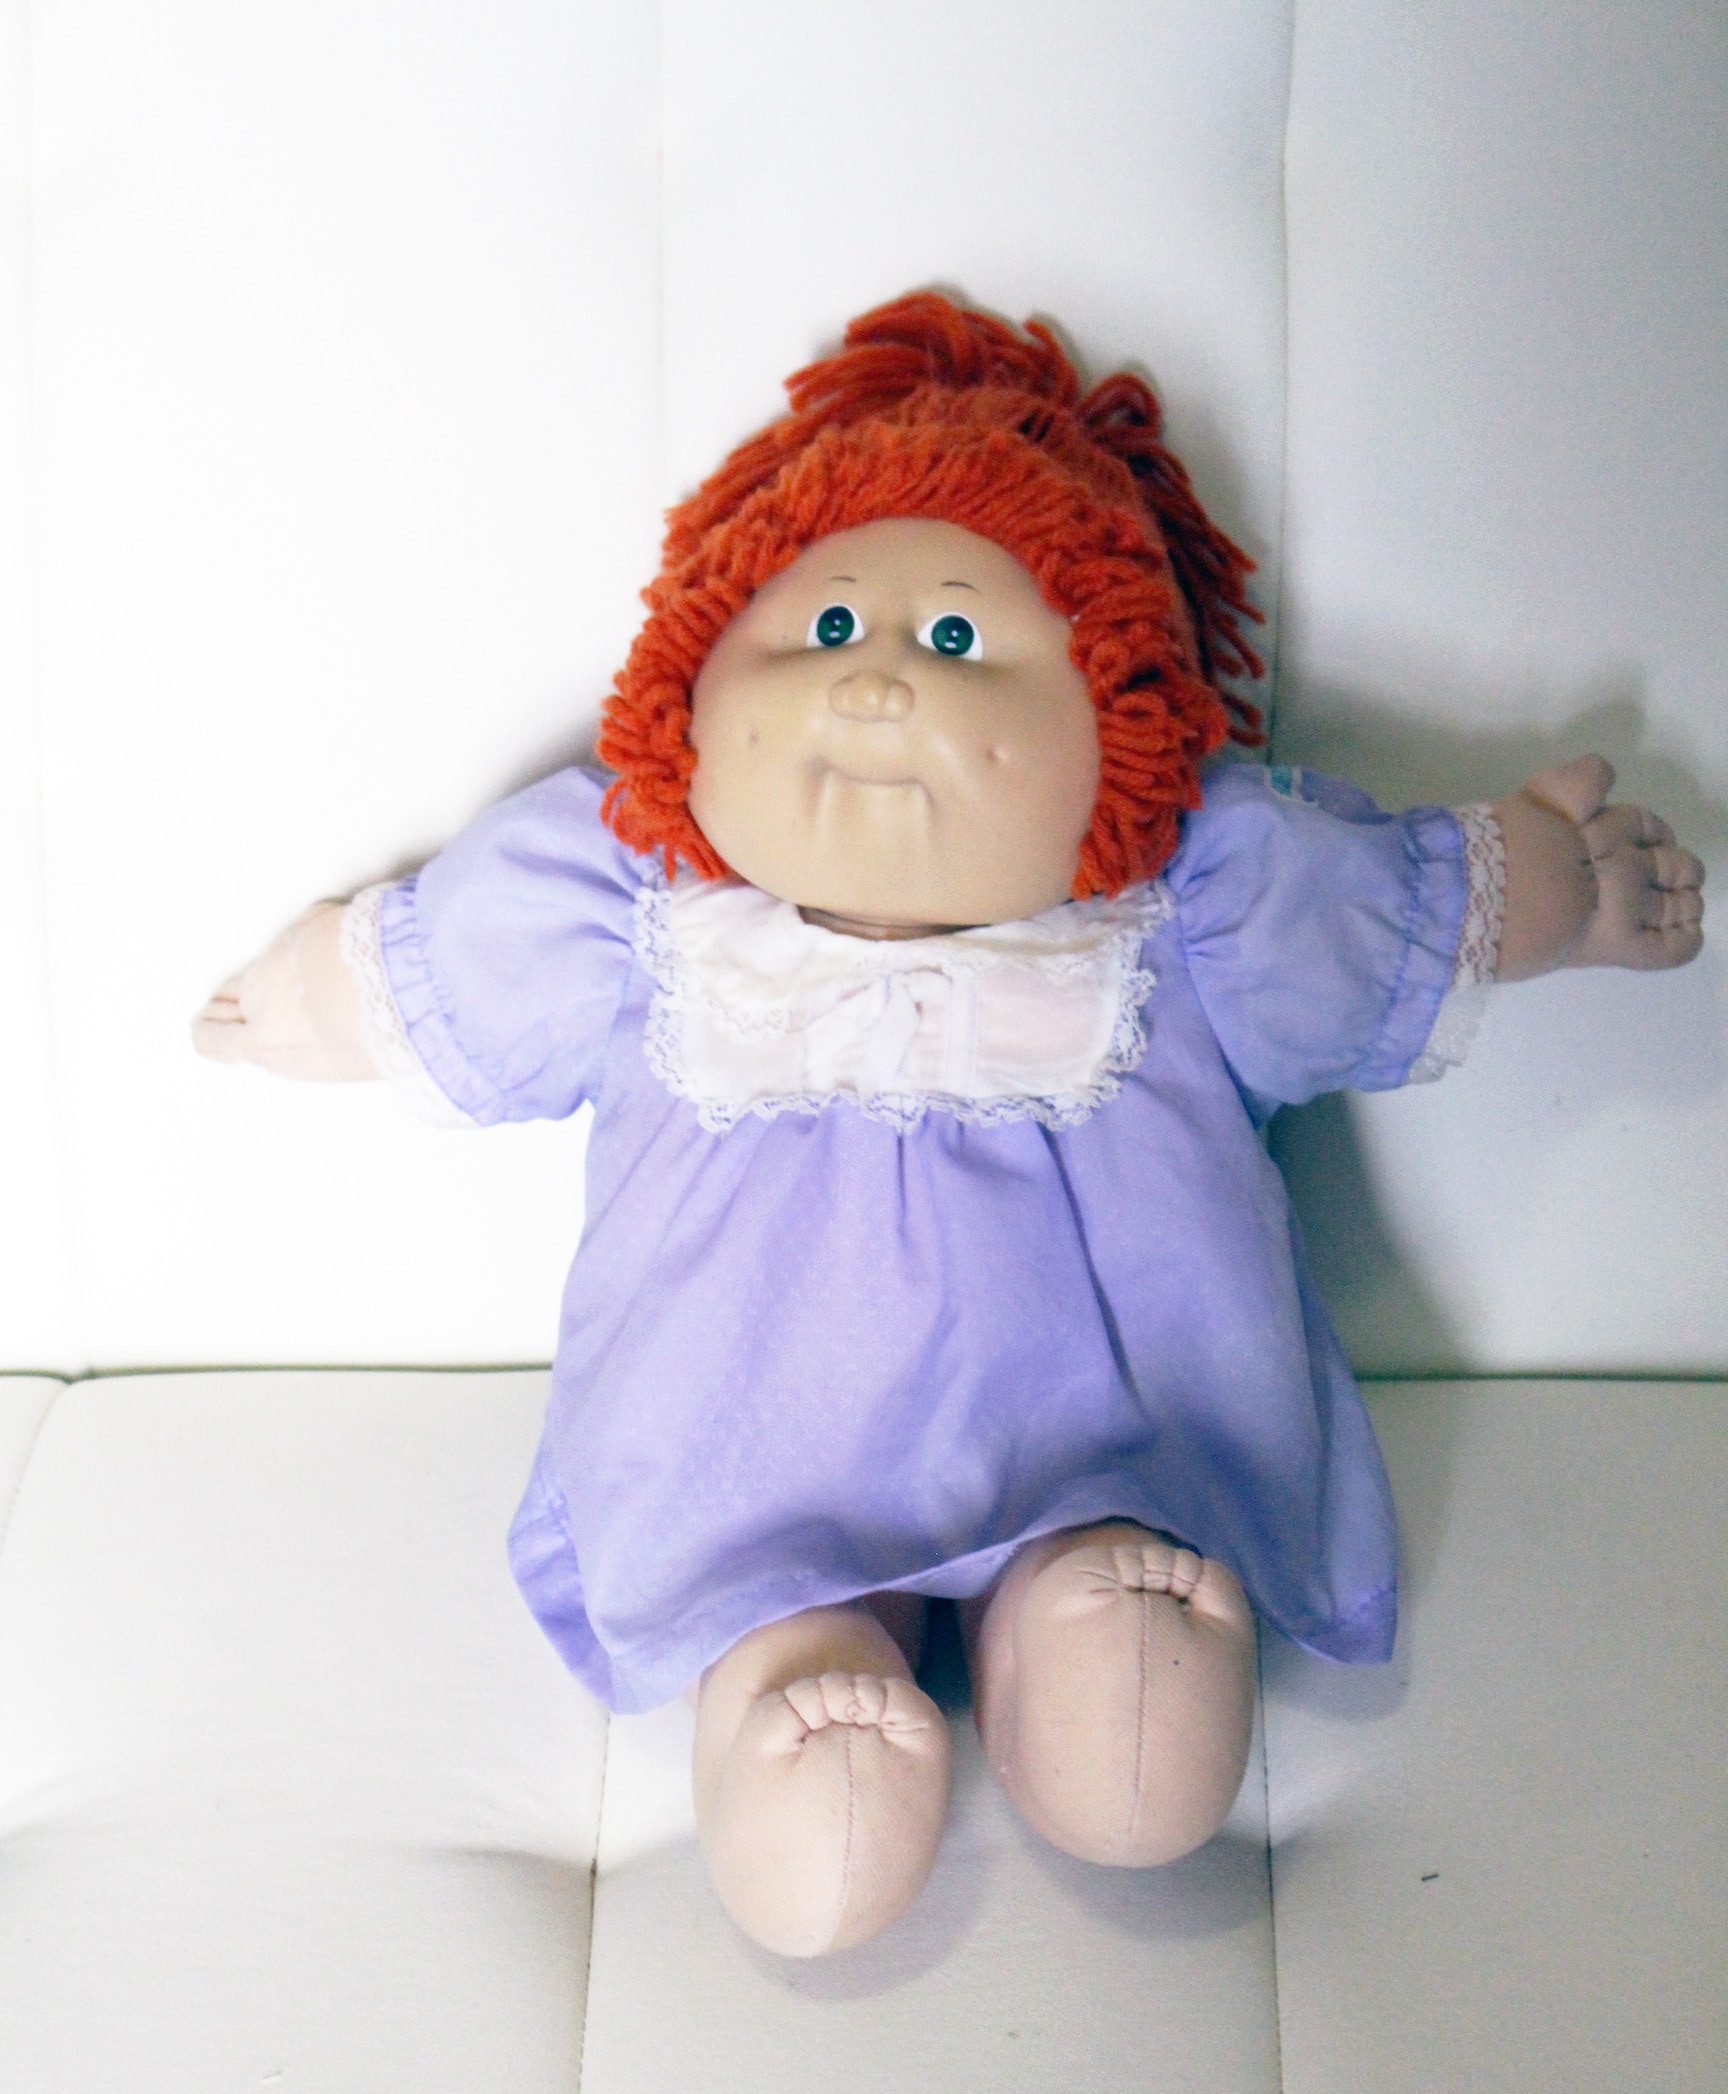 Original Cabbage Patch Kids  ORIGINAL RED HAIRED CABBAGE PATCH KIDS DOLL XAVIER ROBERTS